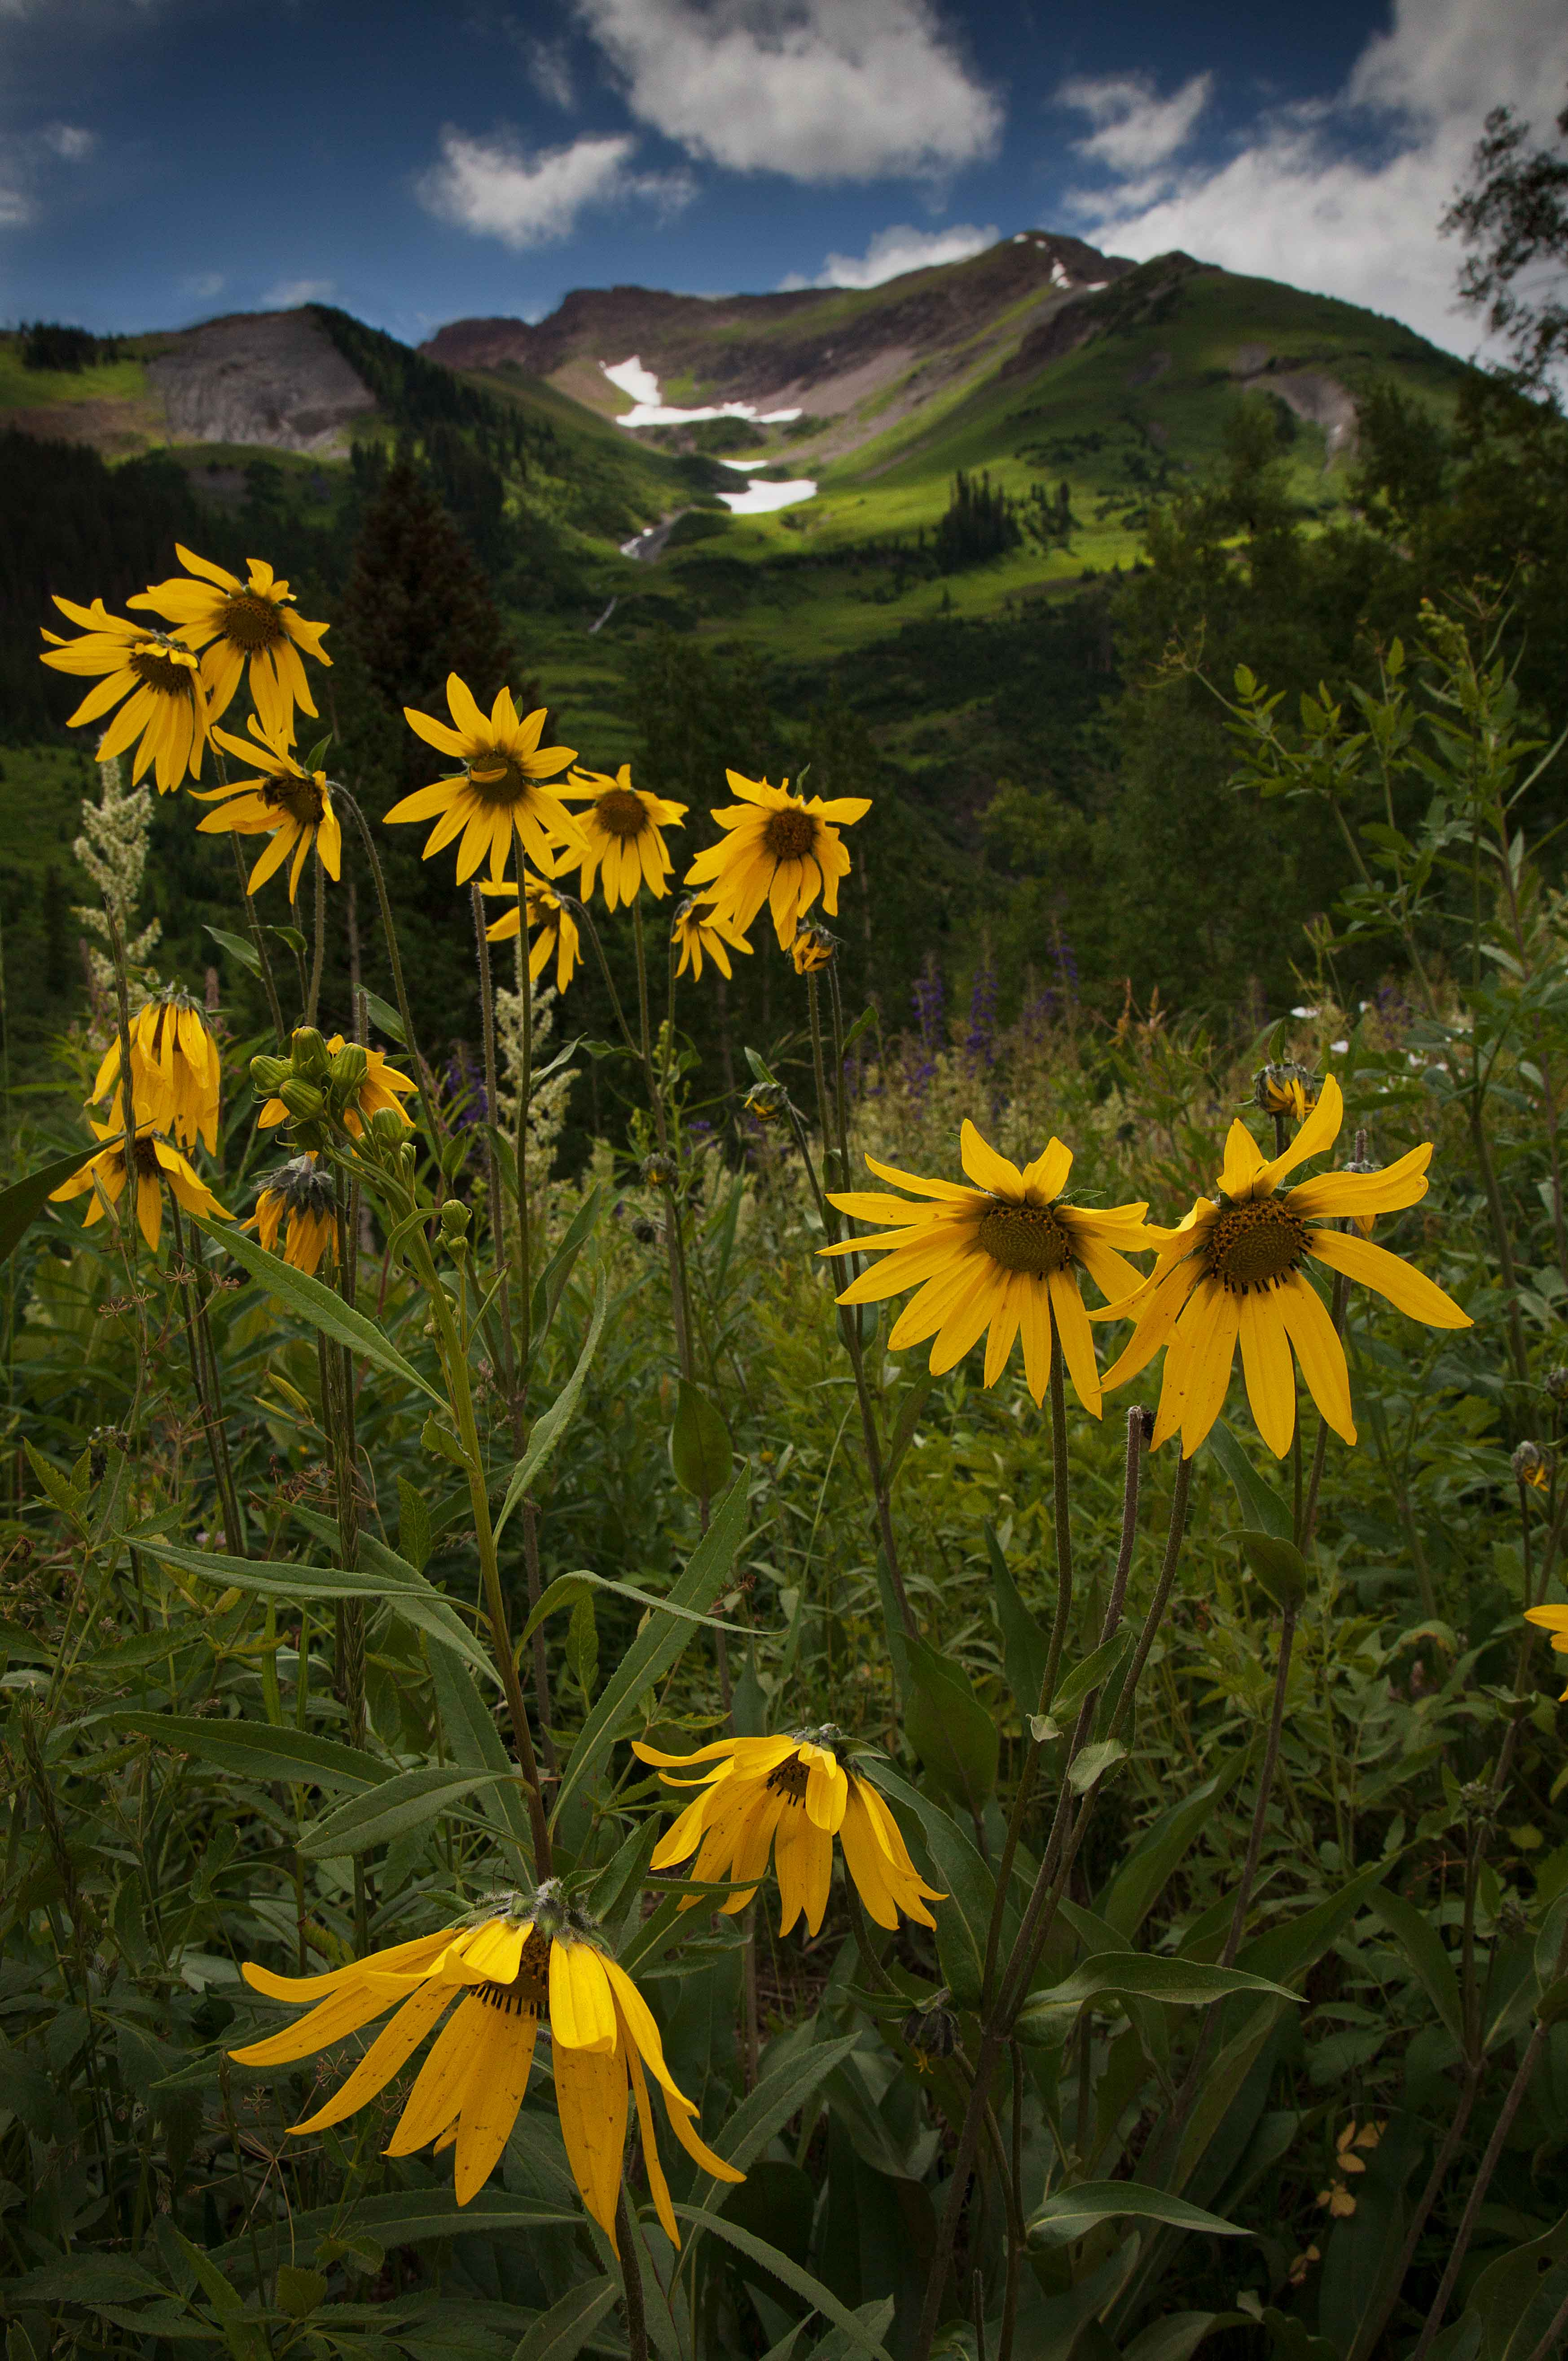 Wild Sunflowers in the Colorado Rocky Mts.